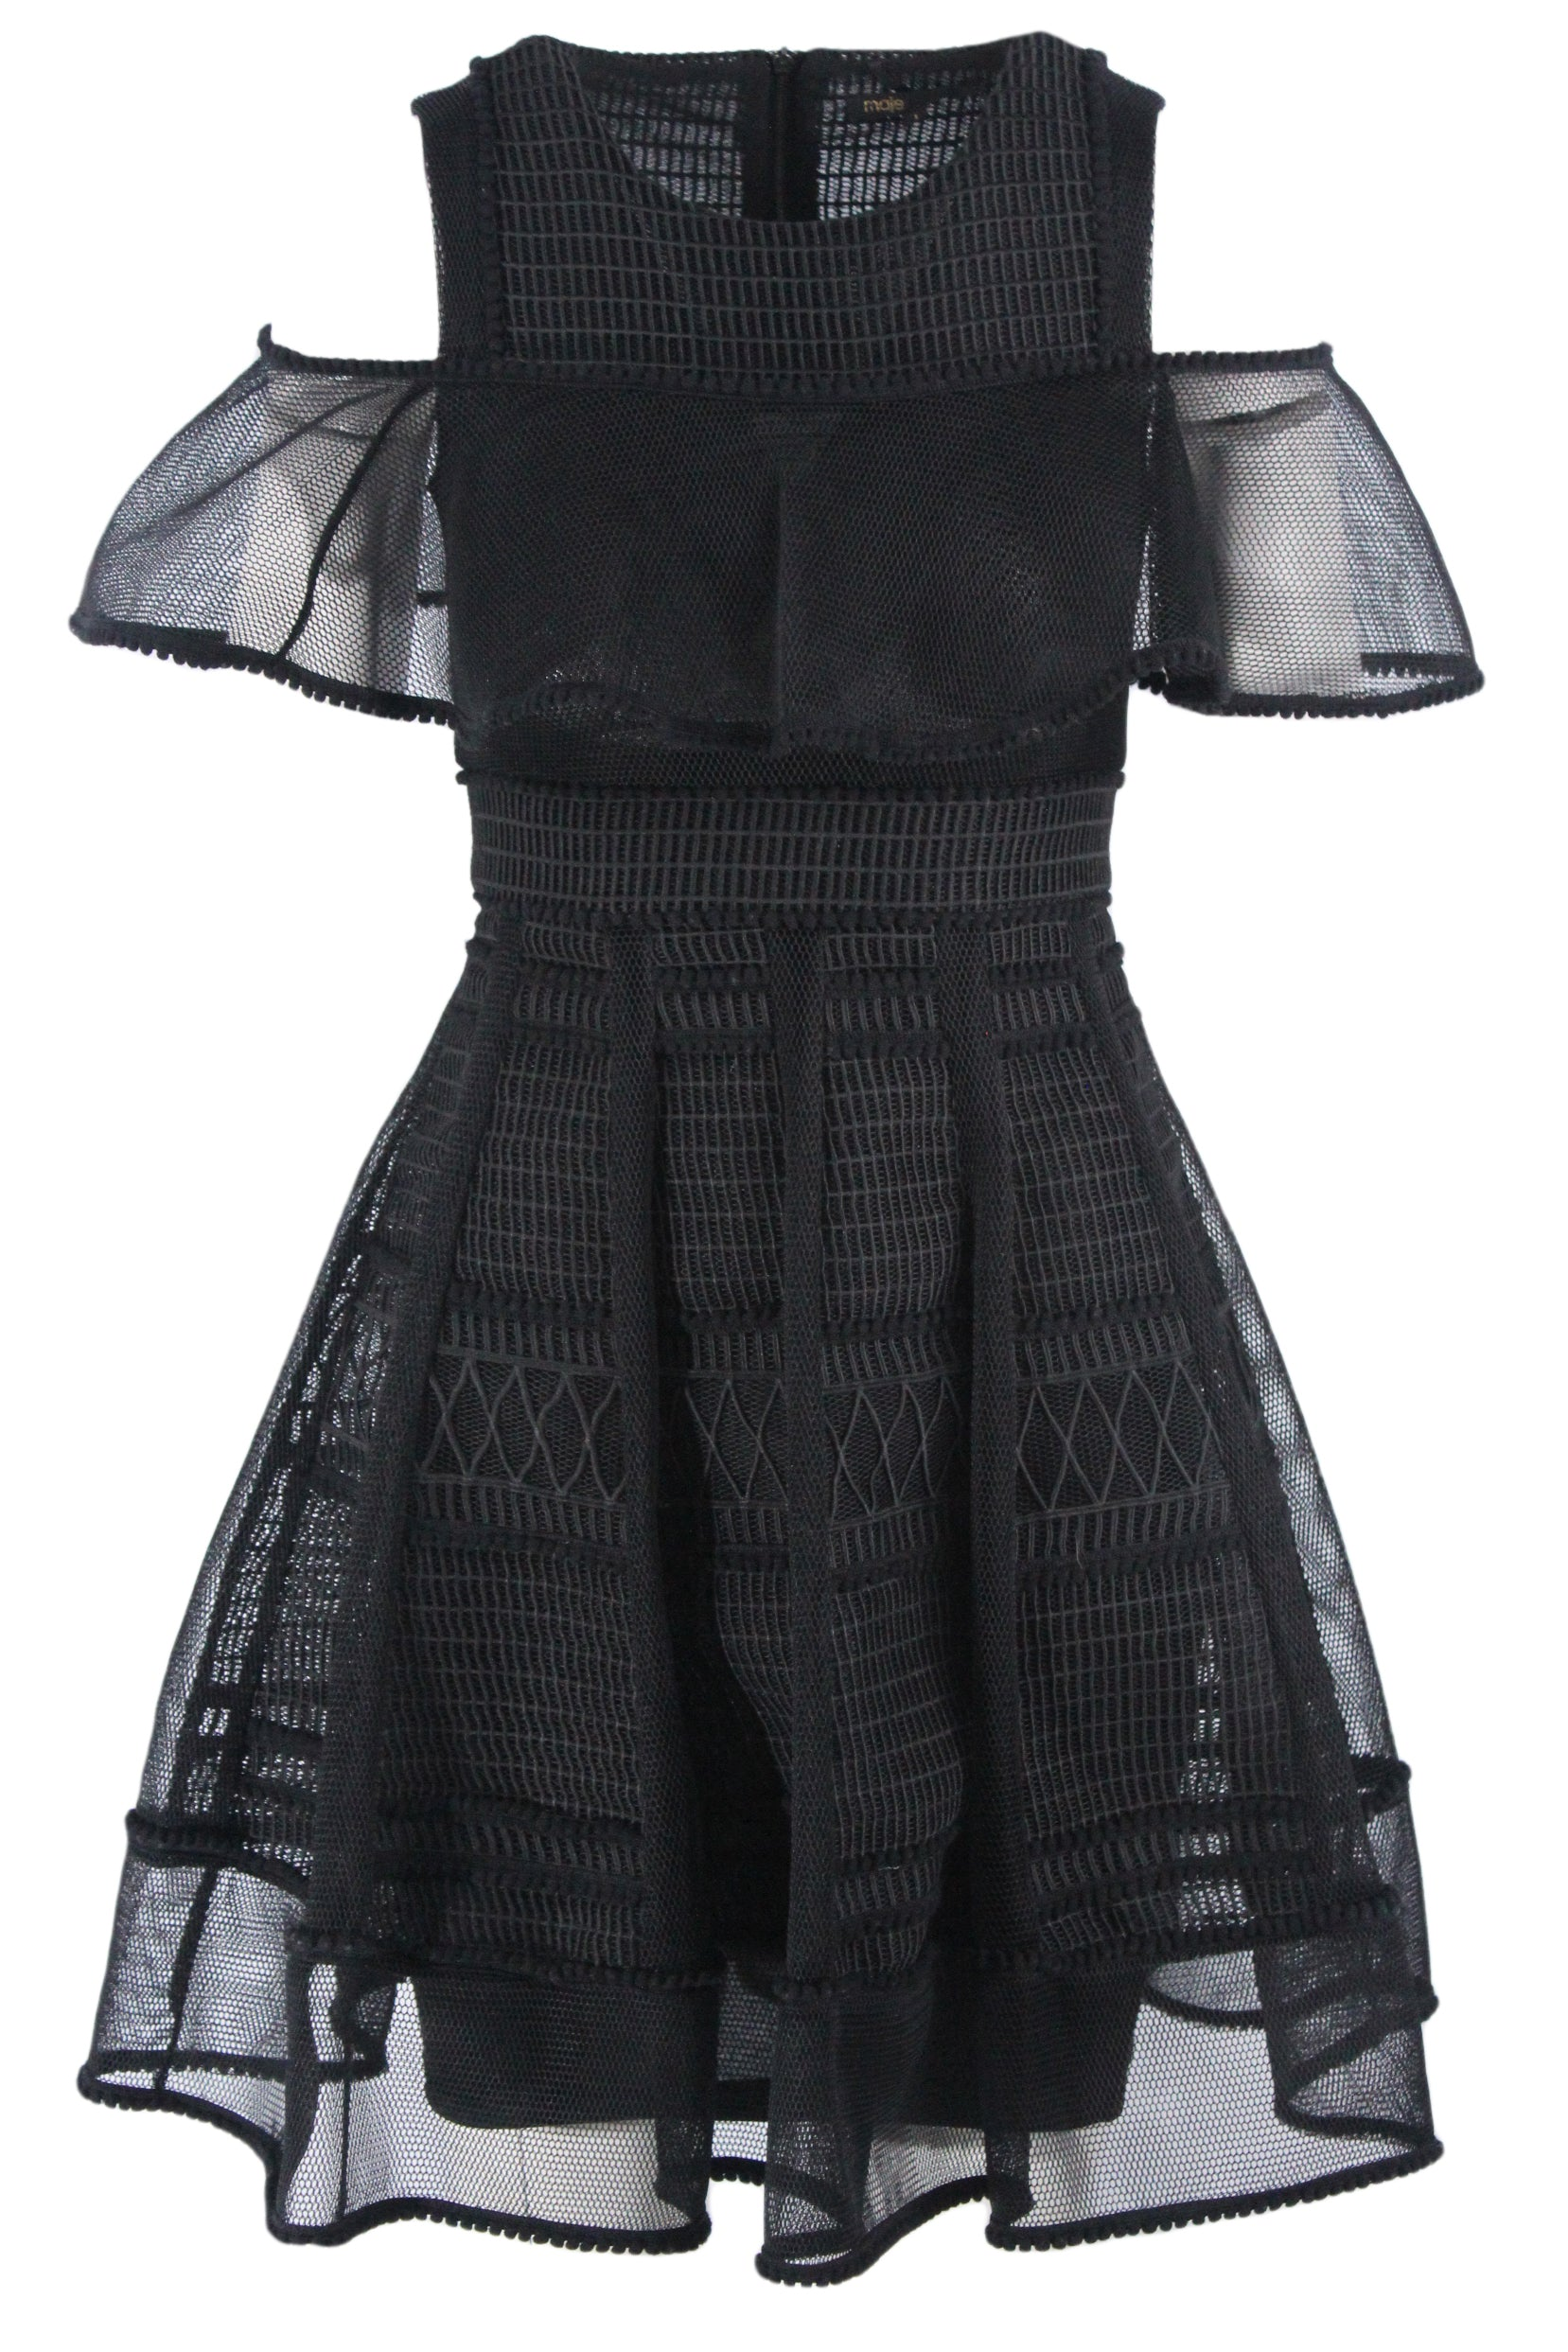 maje black sleeveless/off the shoulder short dress. features a conceptual design mesh petticoat, and a geometric and textured design throughout.